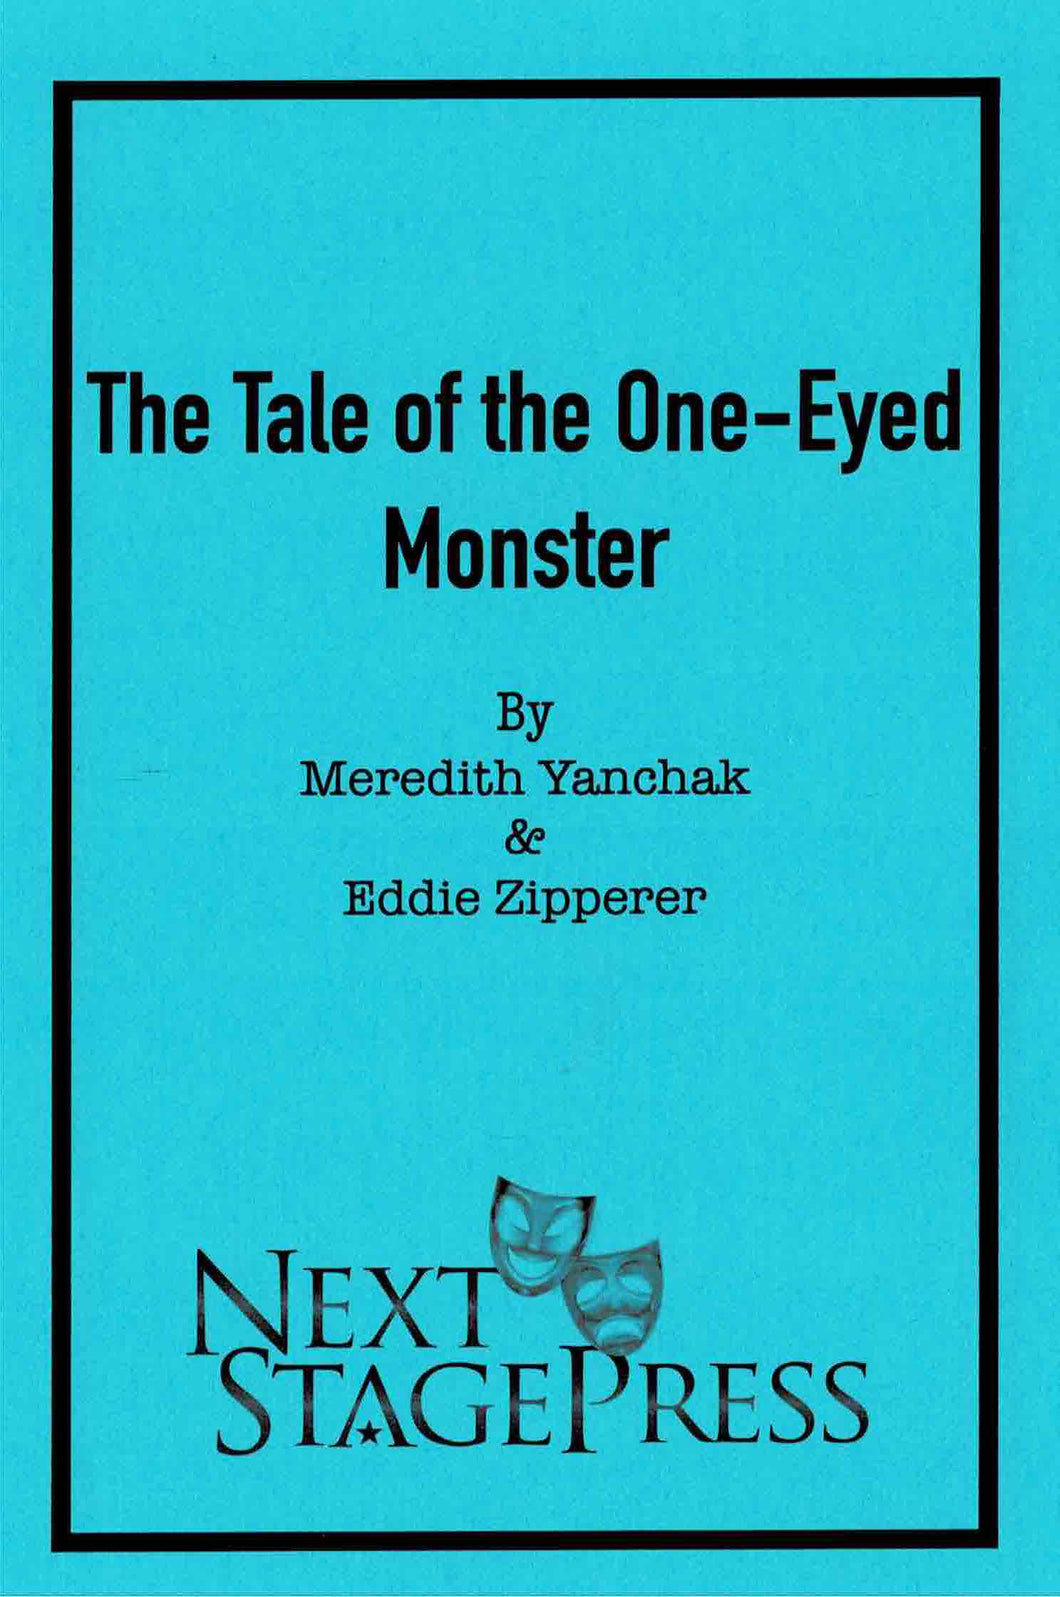 The Tale of the One-Eyed Monster